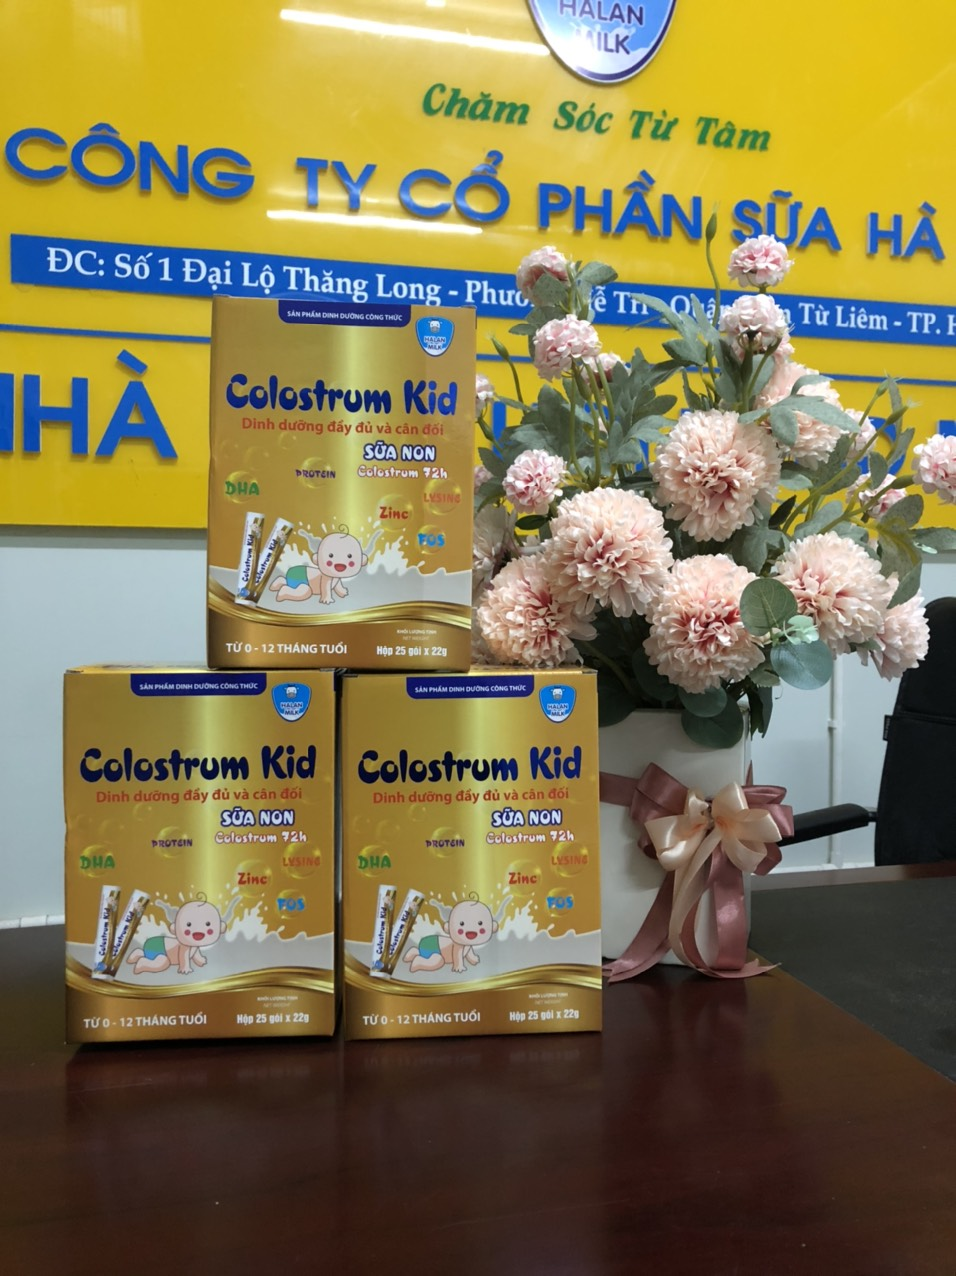 COLOSTRUM KID hộp 550g